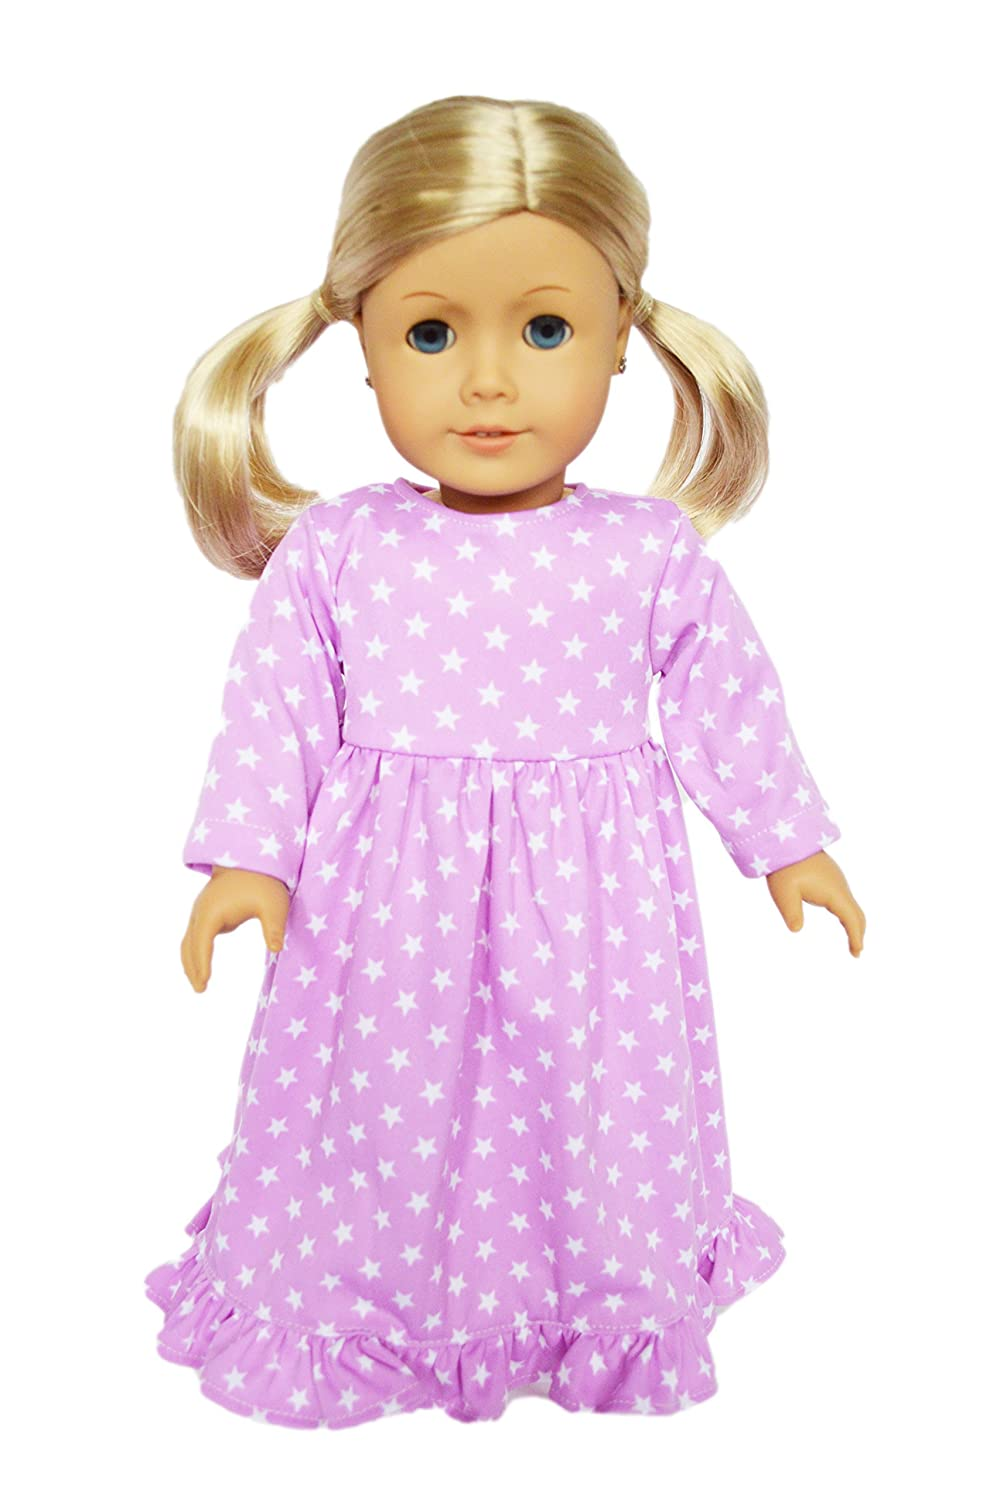 My Brittany's Lavender Star Nightgown for 18 Inch American Girl Dolls Brittany' s